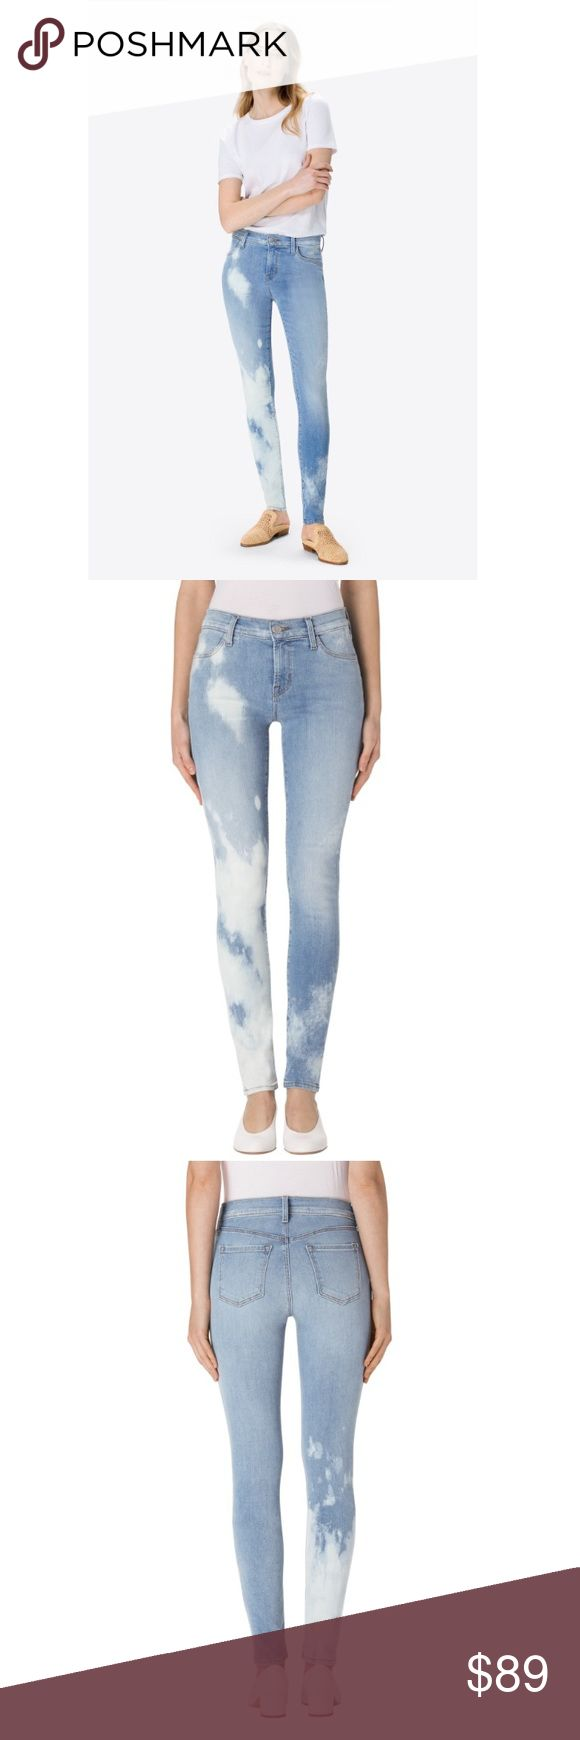 J brand super skinny mid 26 downpour jeans nwot Our mid-rise super skinny in light blue super skinny jean takes on major edge with white bleached detailing throughout the front and back. Complete with a silver shank button.  Style number 620I526  Skinny Mid-Rise 9.75-inch Leg Opening 30-inch Inseam 8.75-inch Rise 11-Ounce Cross Hatch Super Stretch 93% Cotton, 5% Polyester, 2% Lycra Designed in USA These are brand new without tags and have never been worn!! J Brand Jeans Skinny